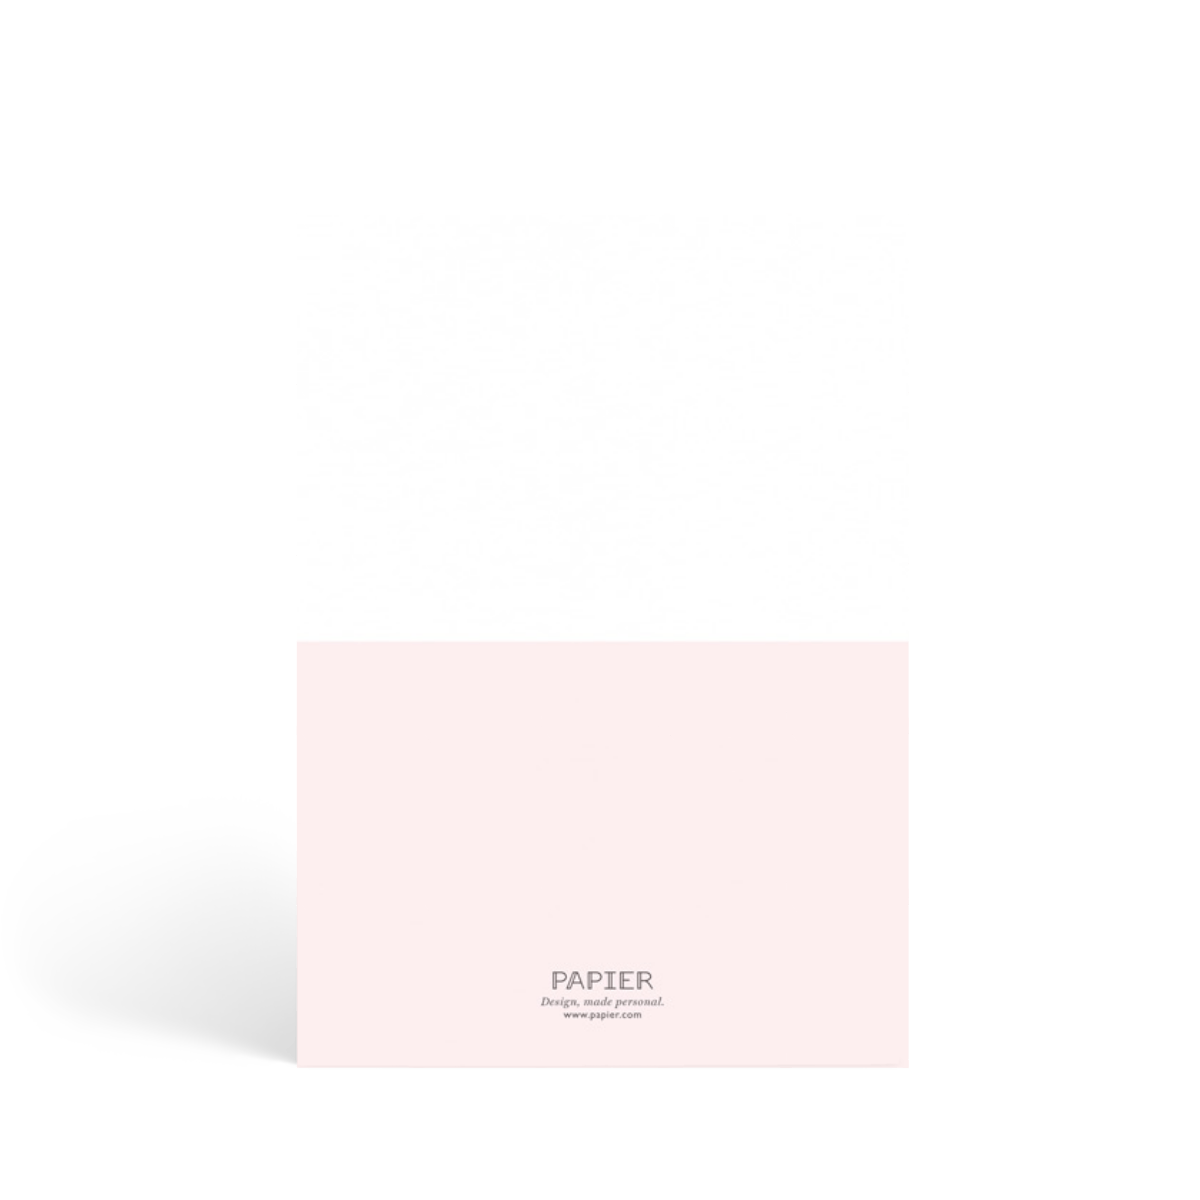 Https%3a%2f%2fwww.papier.com%2fproduct image%2f63561%2f5%2fdemi pink 14951 back 1548792300.png?ixlib=rb 1.1